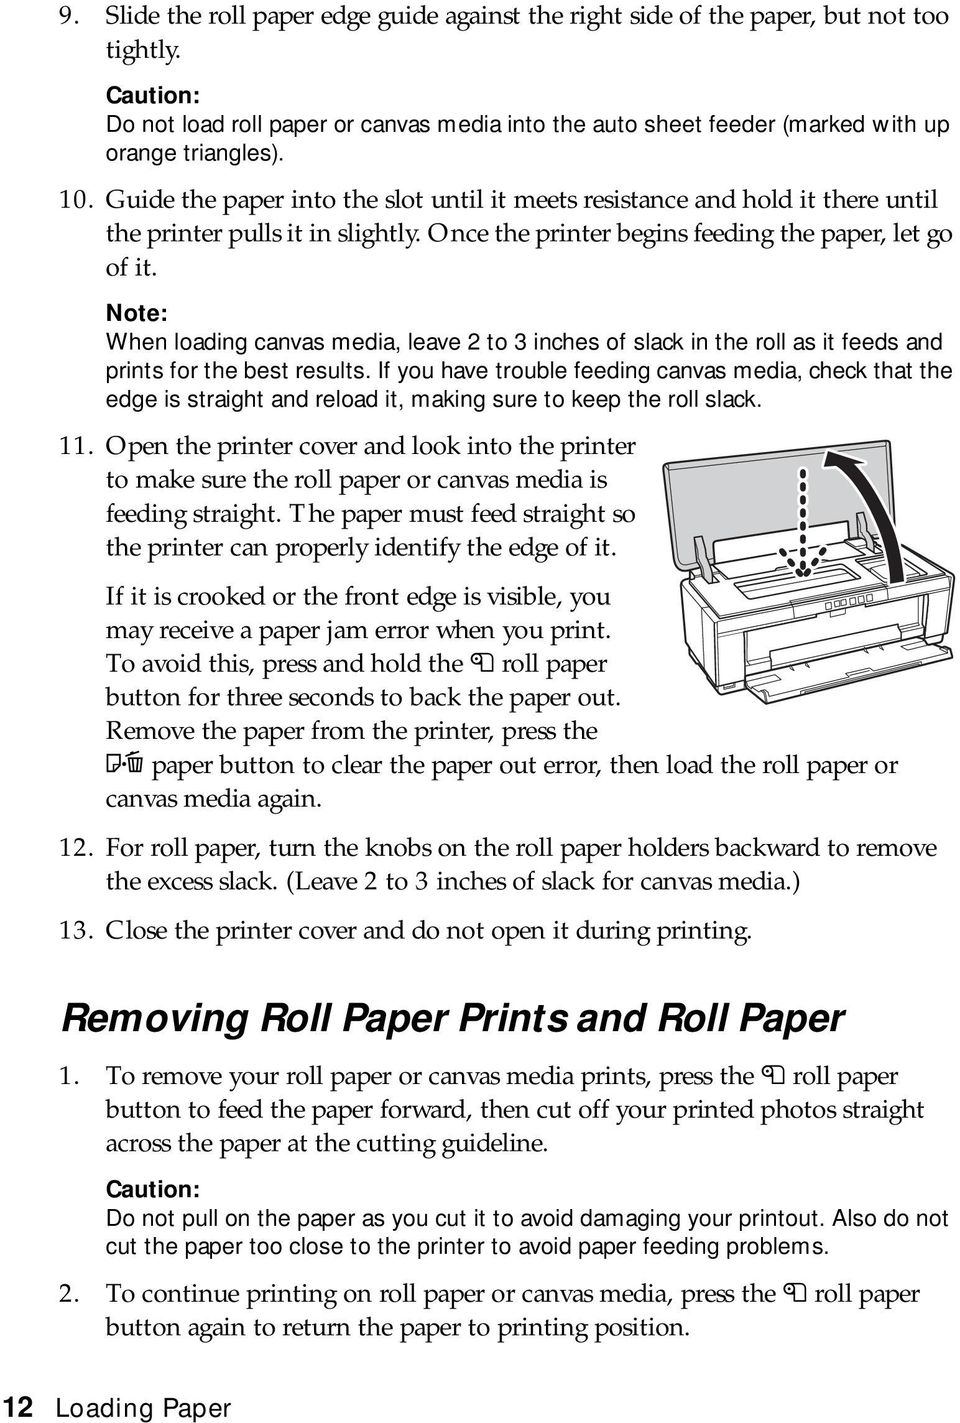 Guide the paper into the slot until it meets resistance and hold it there until the printer pulls it in slightly. Once the printer begins feeding the paper, let go of it.